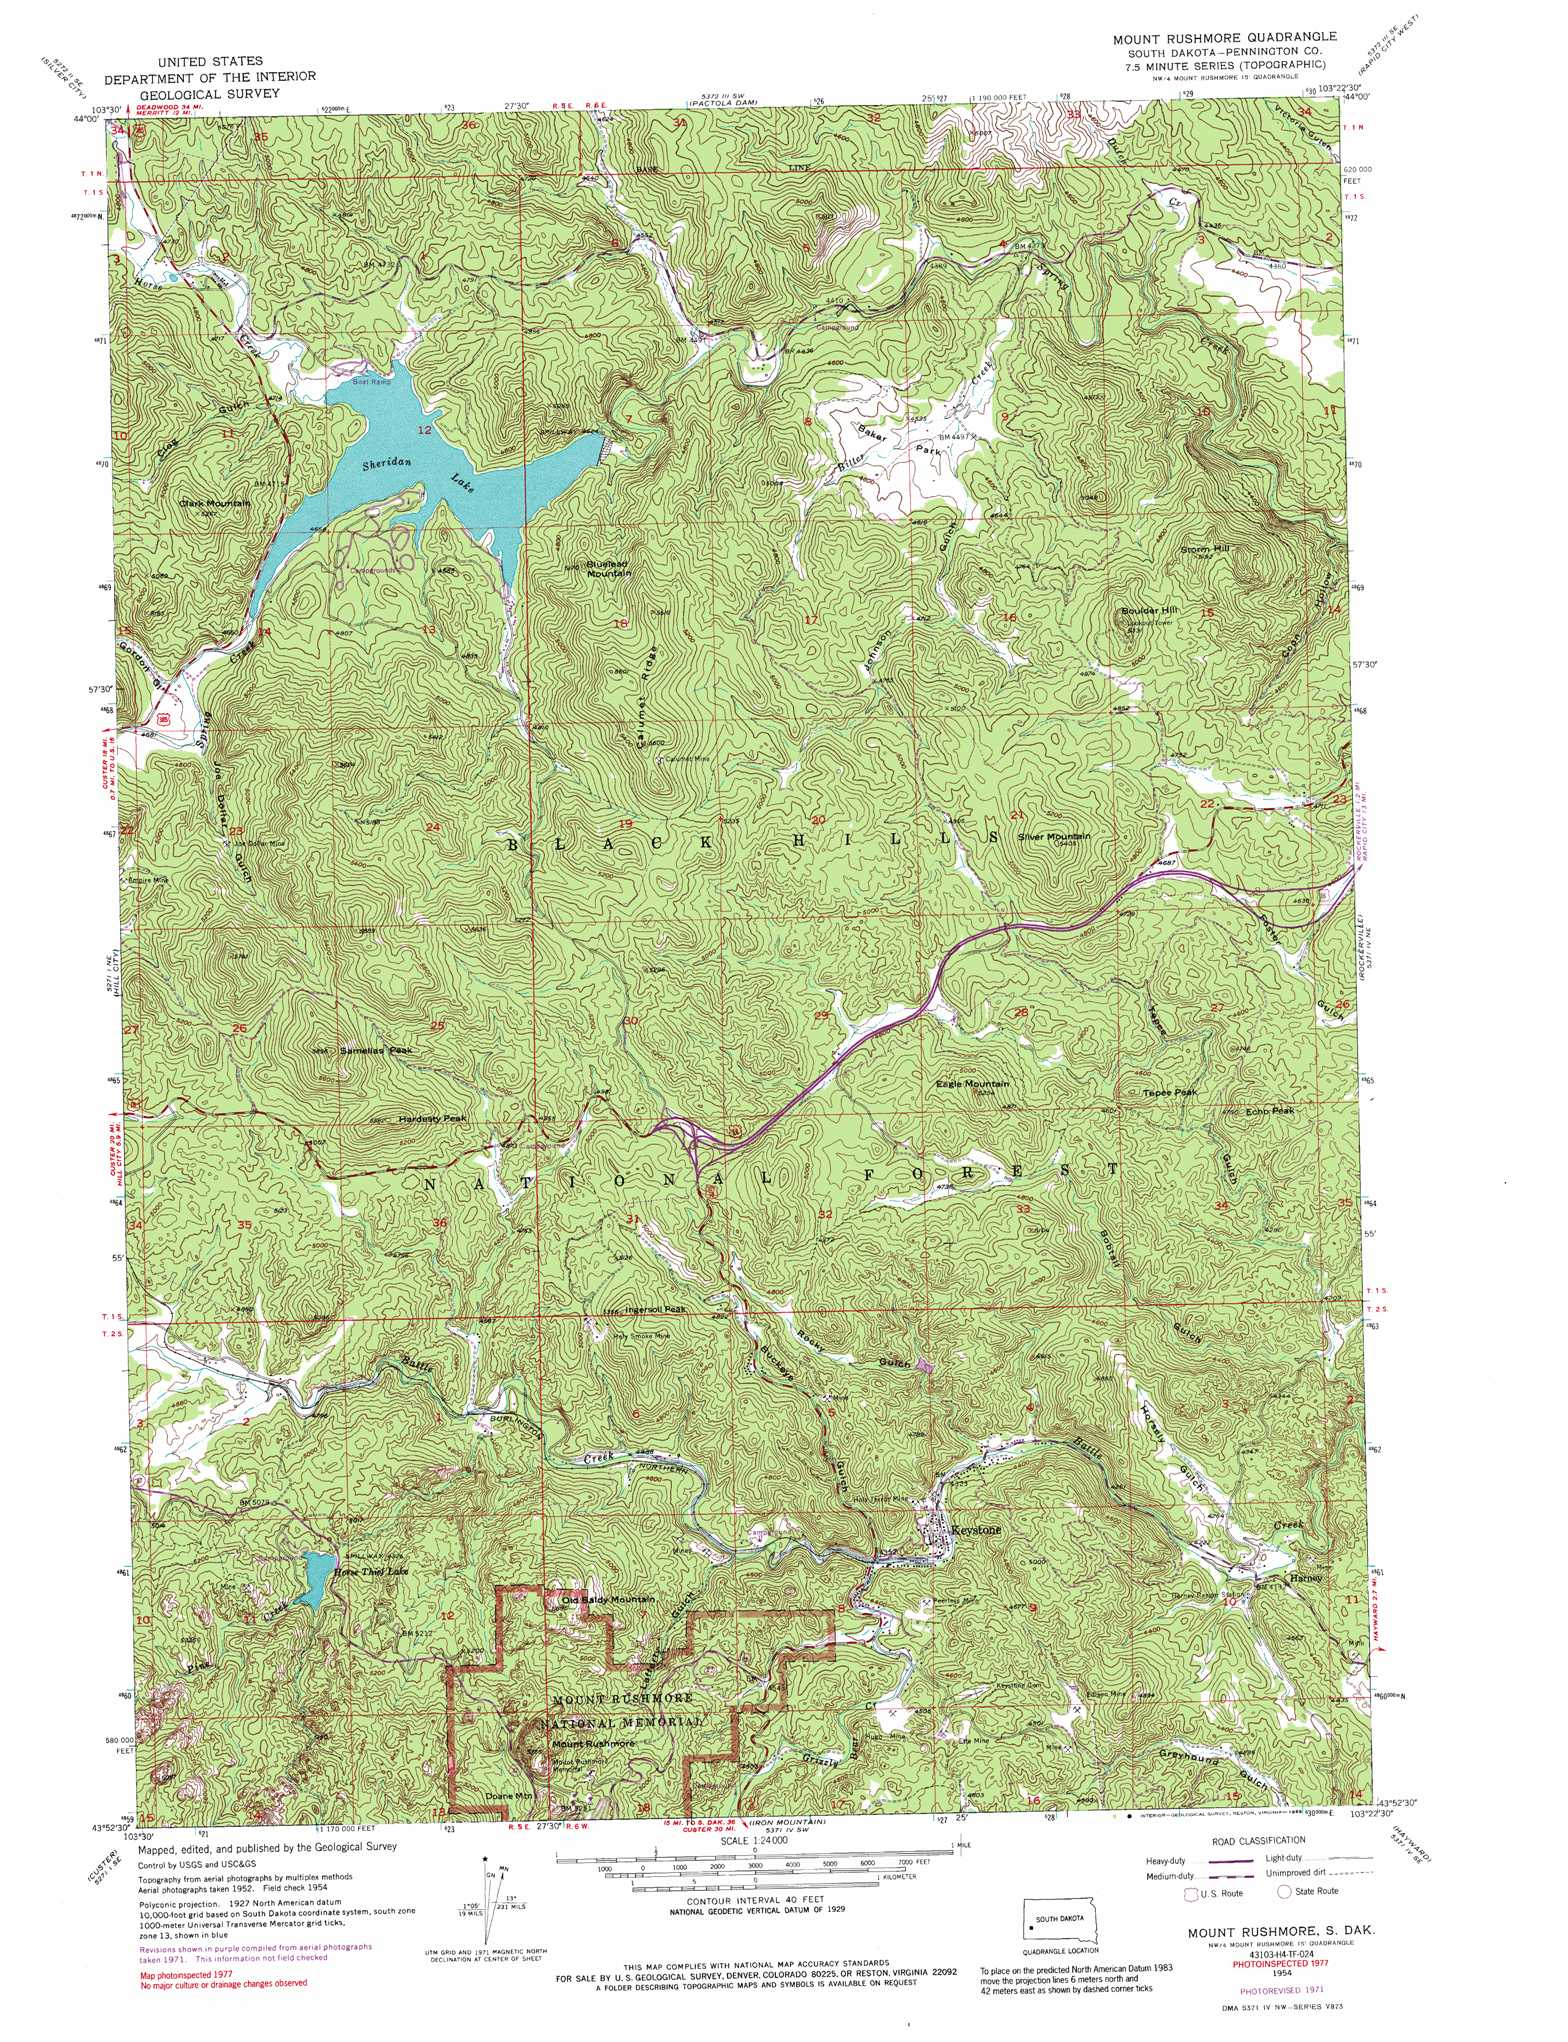 Mount Rushmore Topographic Map SD USGS Topo Quad H - Us topogragphical map